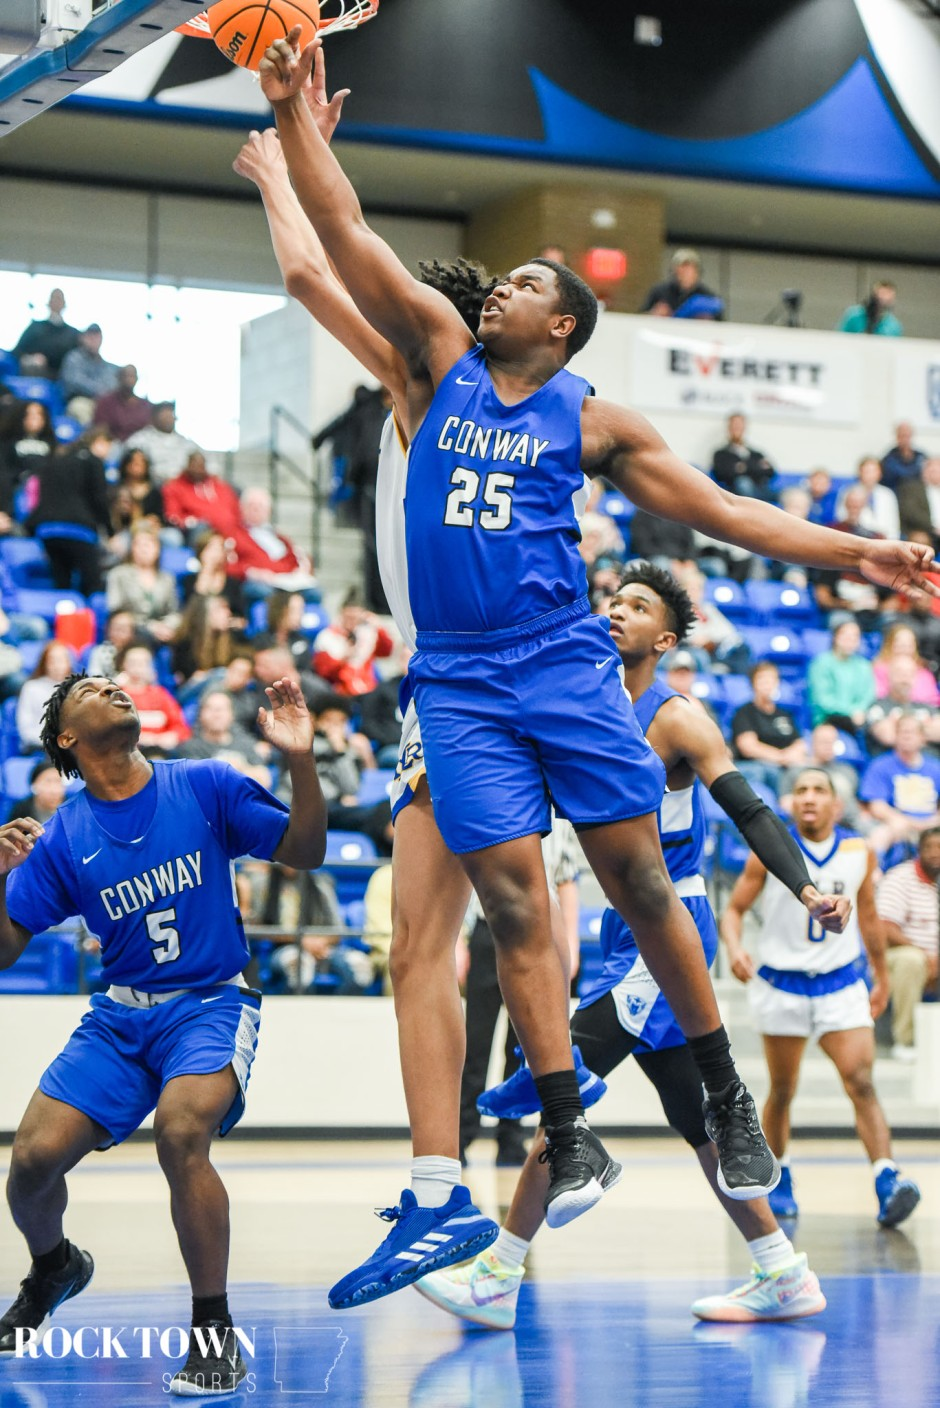 NLR_conway_bball_2020(i)-28